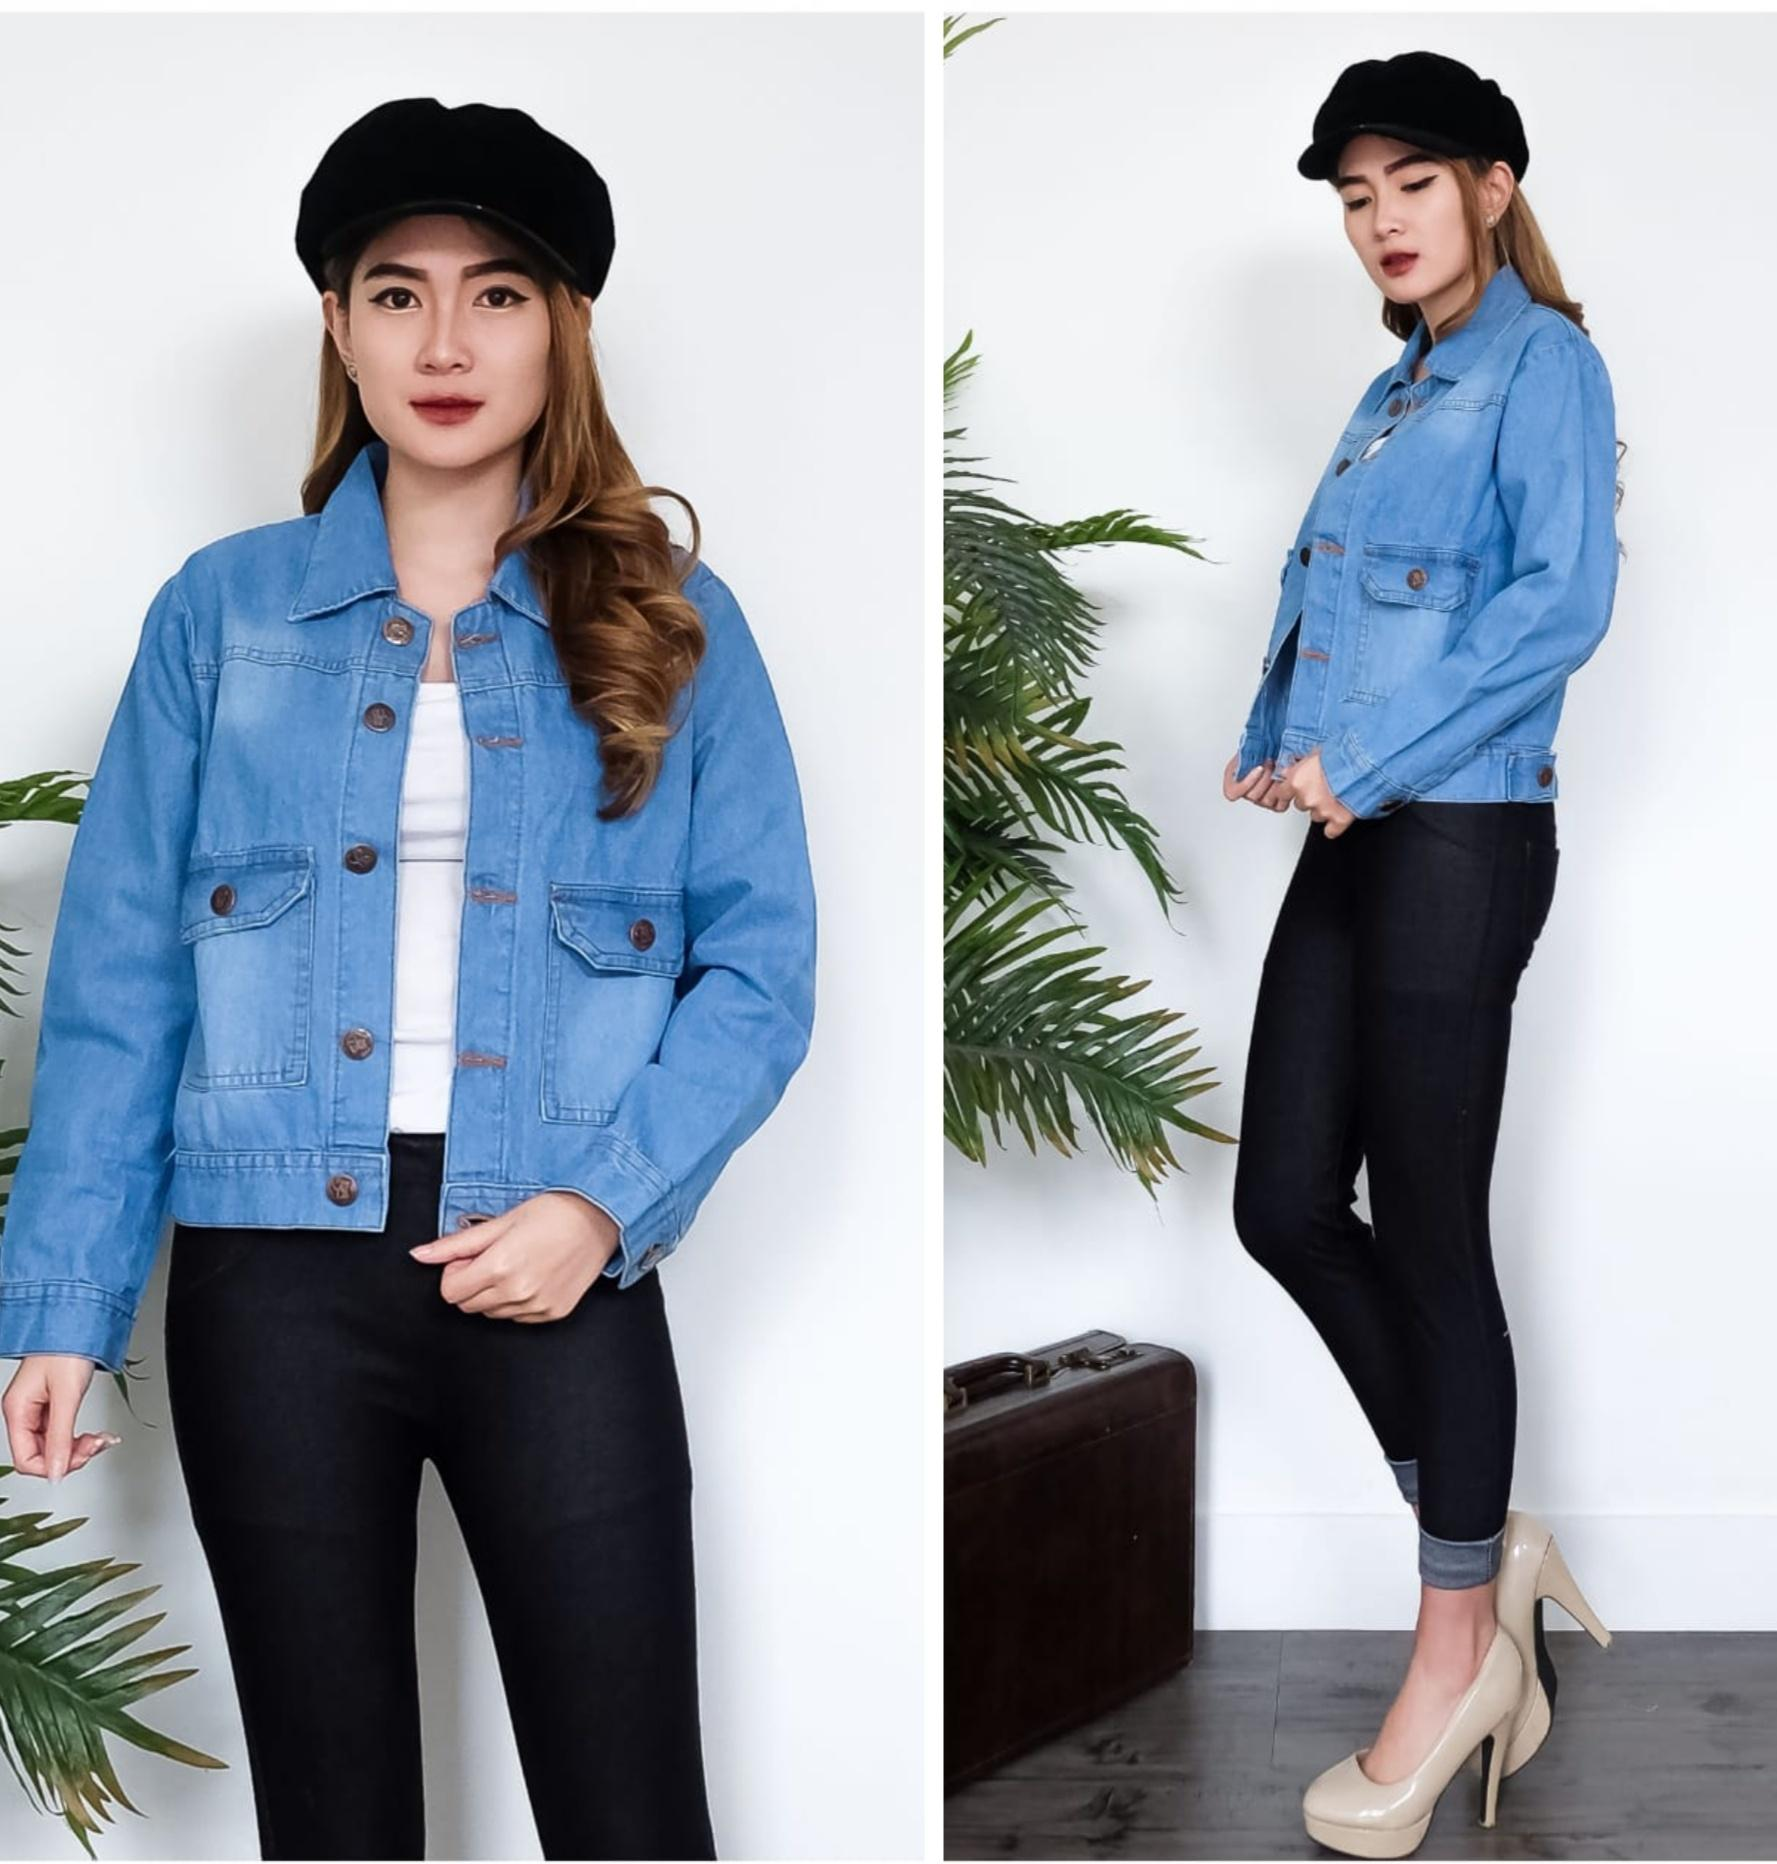 Chic Shop ro Jaket jeans gisella dark blue Bhn jeans wash tebal to fit L